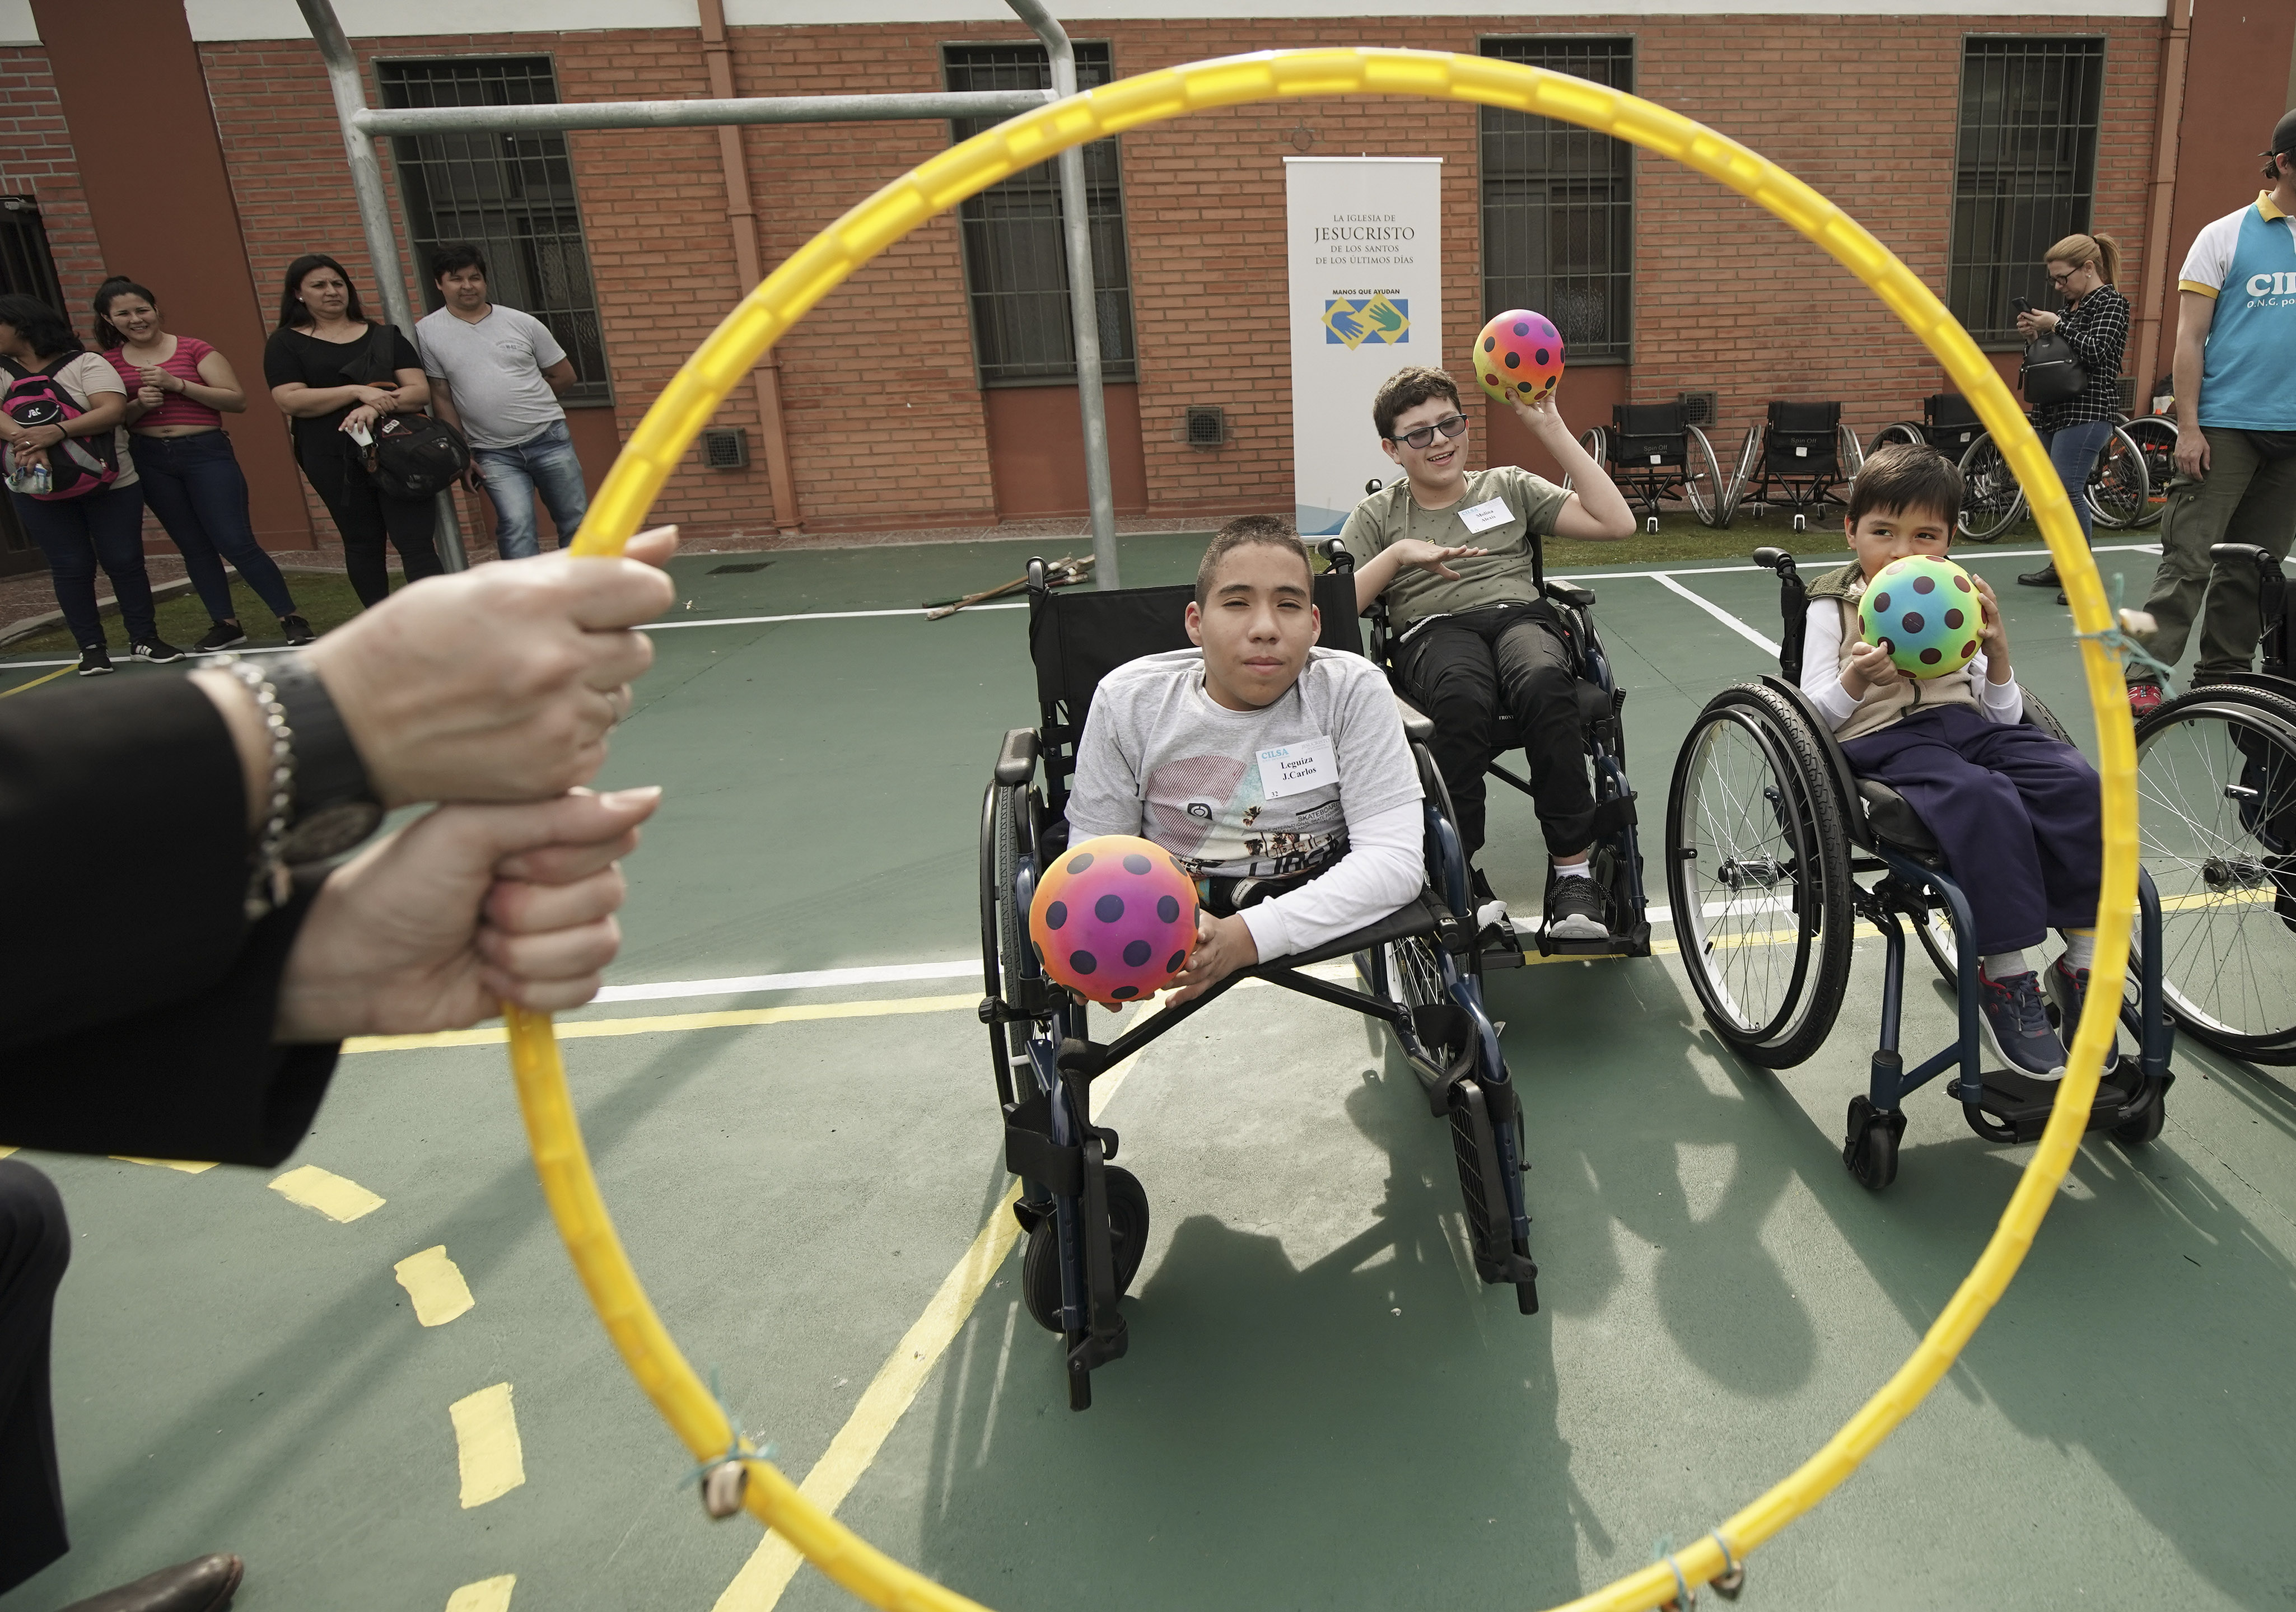 Juan Carlos Loza plays a game after Latter-day Saint Charities donated a wheelchair to him at the Villa Urquiza Ward meetinghouse in Buenos Aires, Argentina, on Wednesday, Aug. 28, 2019.